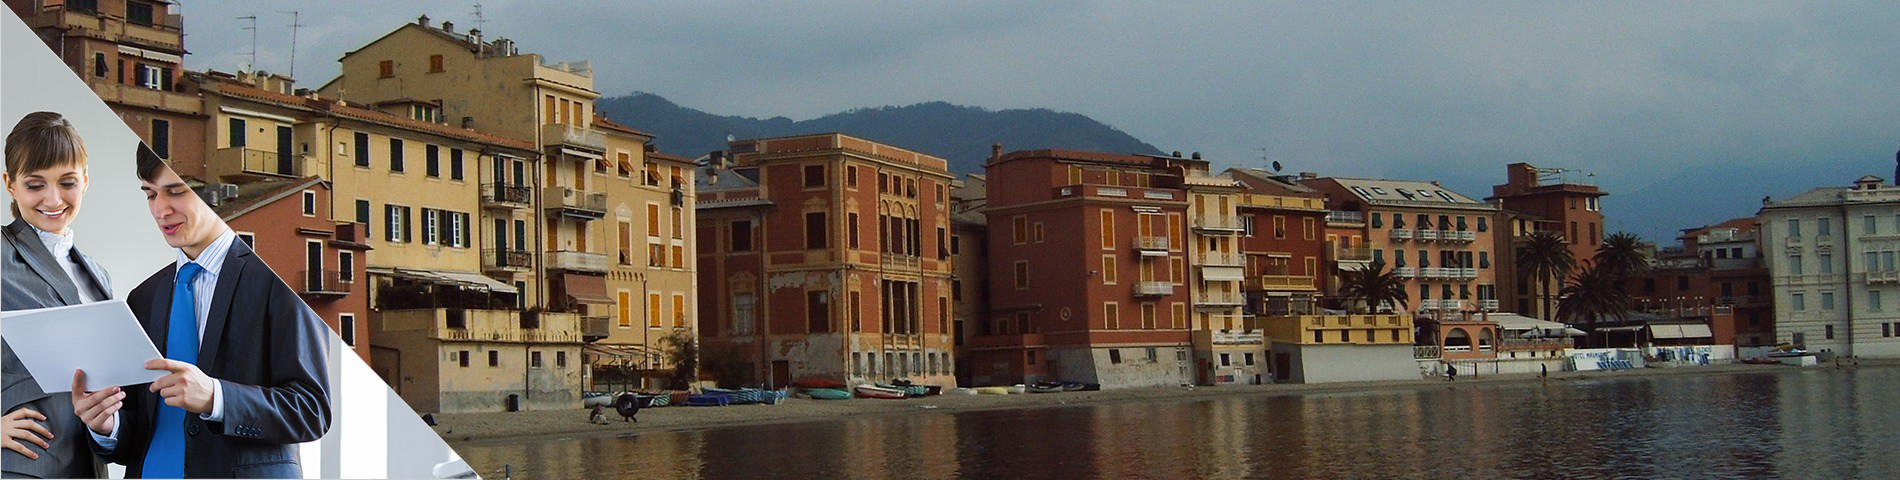 Sestri Levante - Business One-to-One